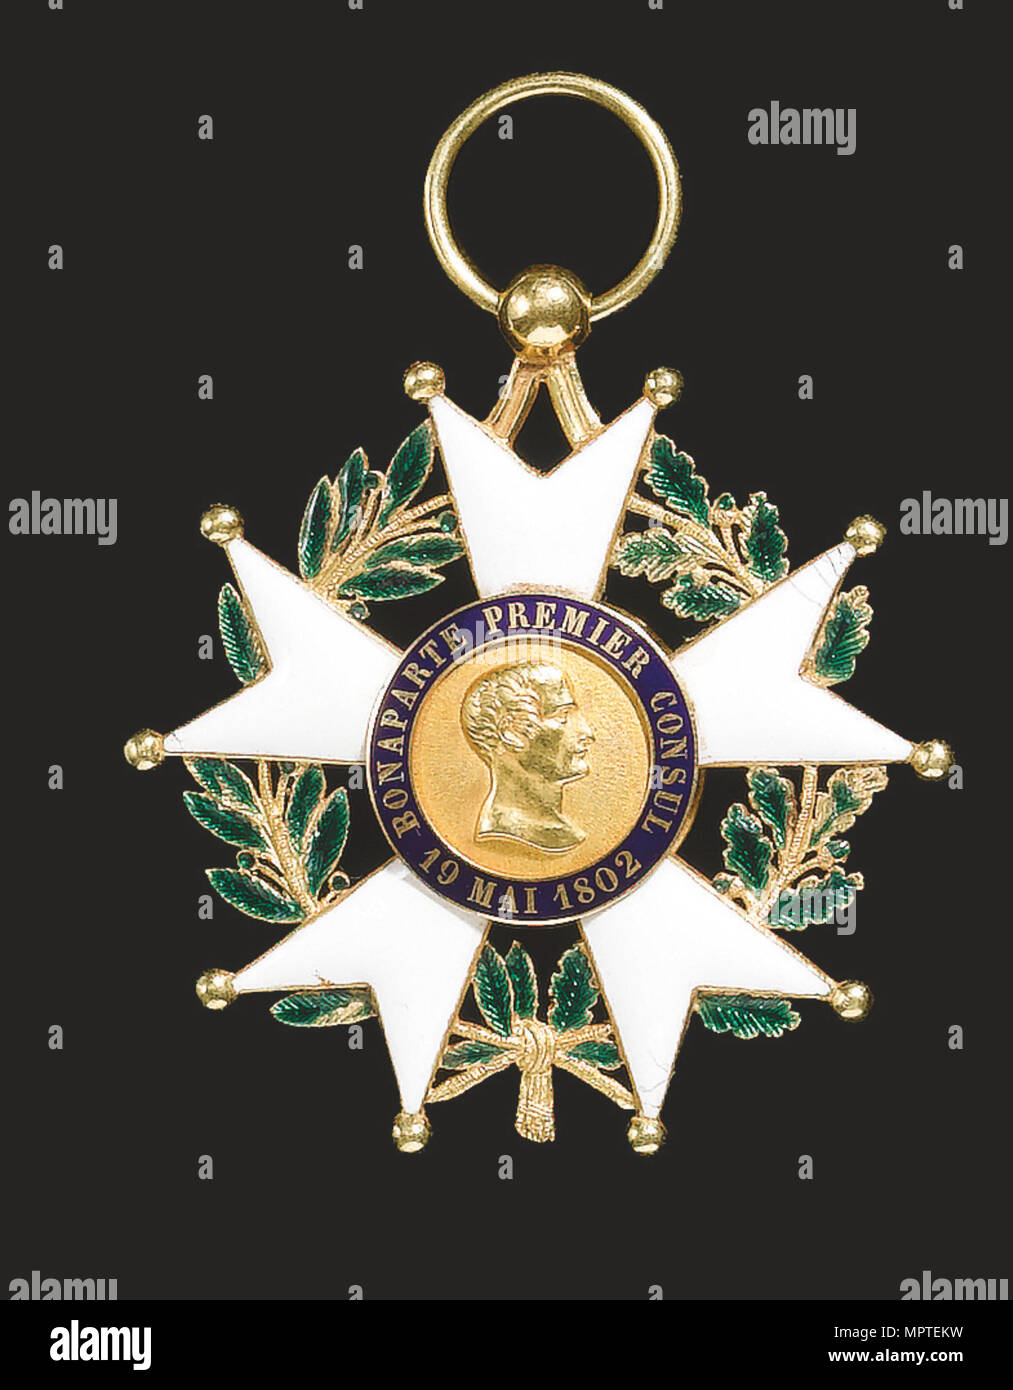 Order of the Légion d'Honneur, 1830-1840s. - Stock Image